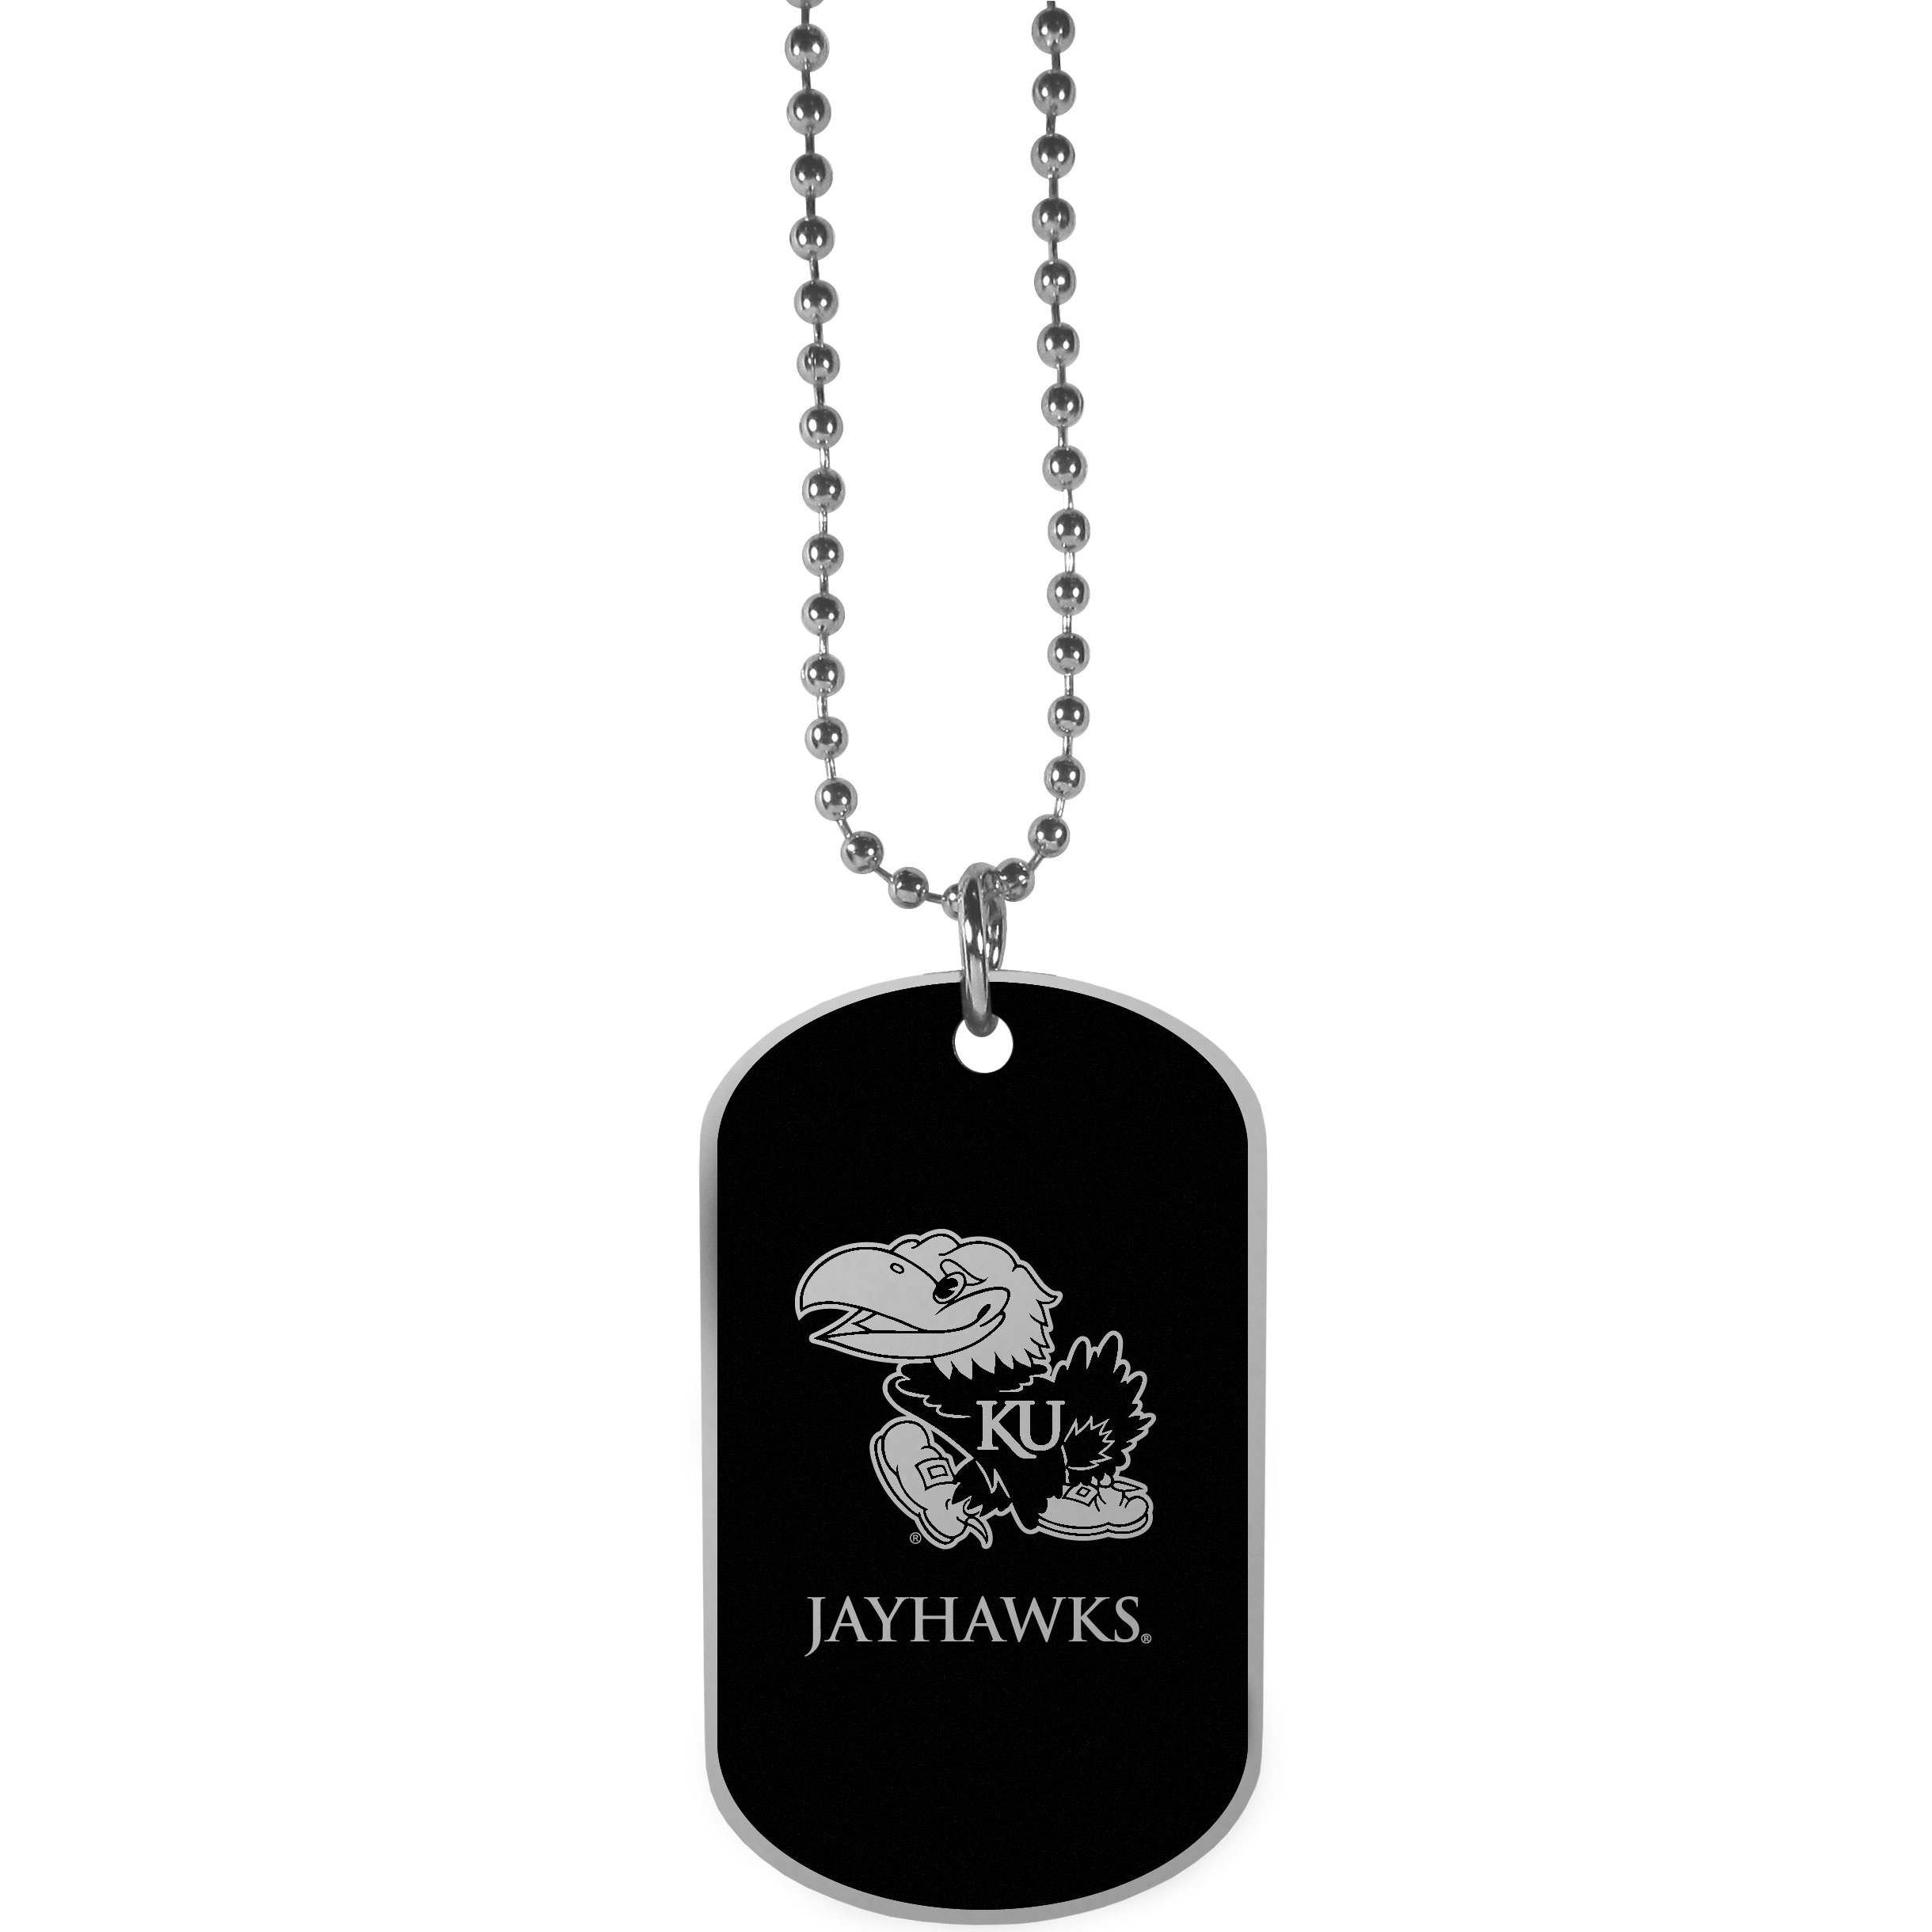 Kansas Jayhawks Chrome Tag Necklace - Dog tag necklaces are a fashion statement that is here to stay. The sporty version of the classic tag features a black printed over a high polish tag to create a bold and sporty look. The tag comes on a 26 inch ball chain with a ball and joint clasp. Any Kansas Jayhawks would be proud to wear this attractive fashion accessory.